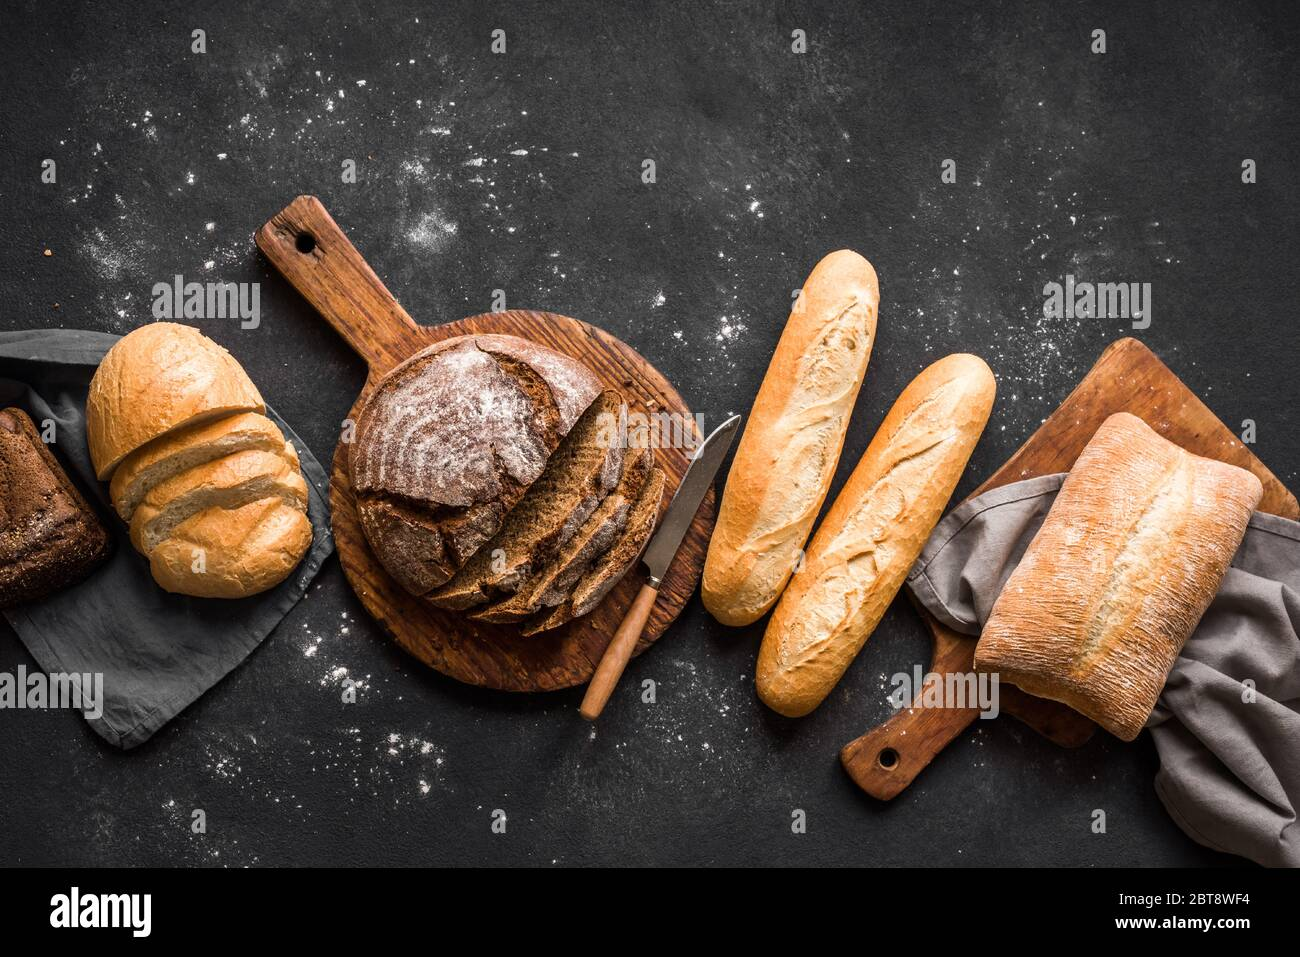 Fresh Bread on black background, top view, copy space. Homemade fresh baked various loafs of wheat and rye bread flat lay. Stock Photo